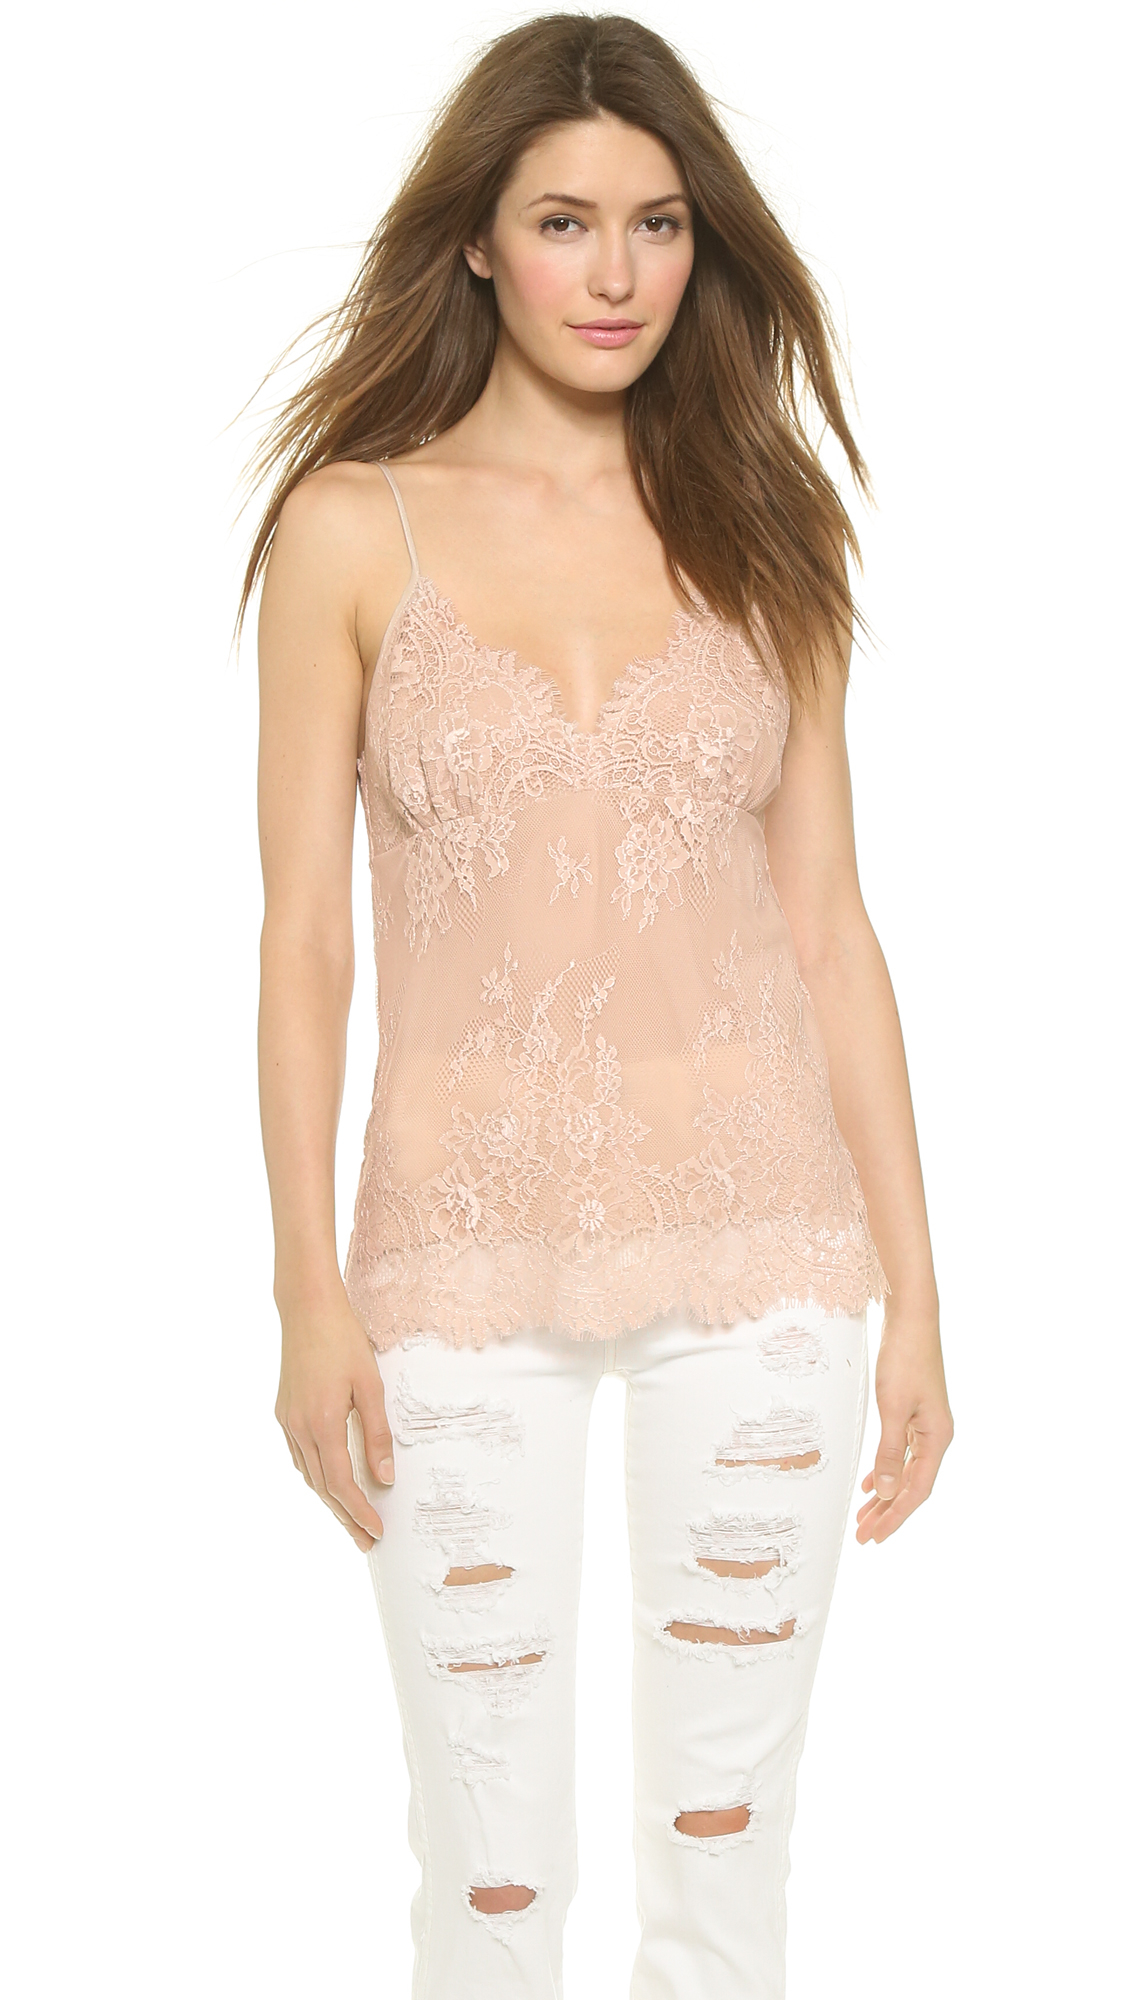 Falcon  Bloom Liz Lace Camisole - Nude In Natural - Lyst-1358